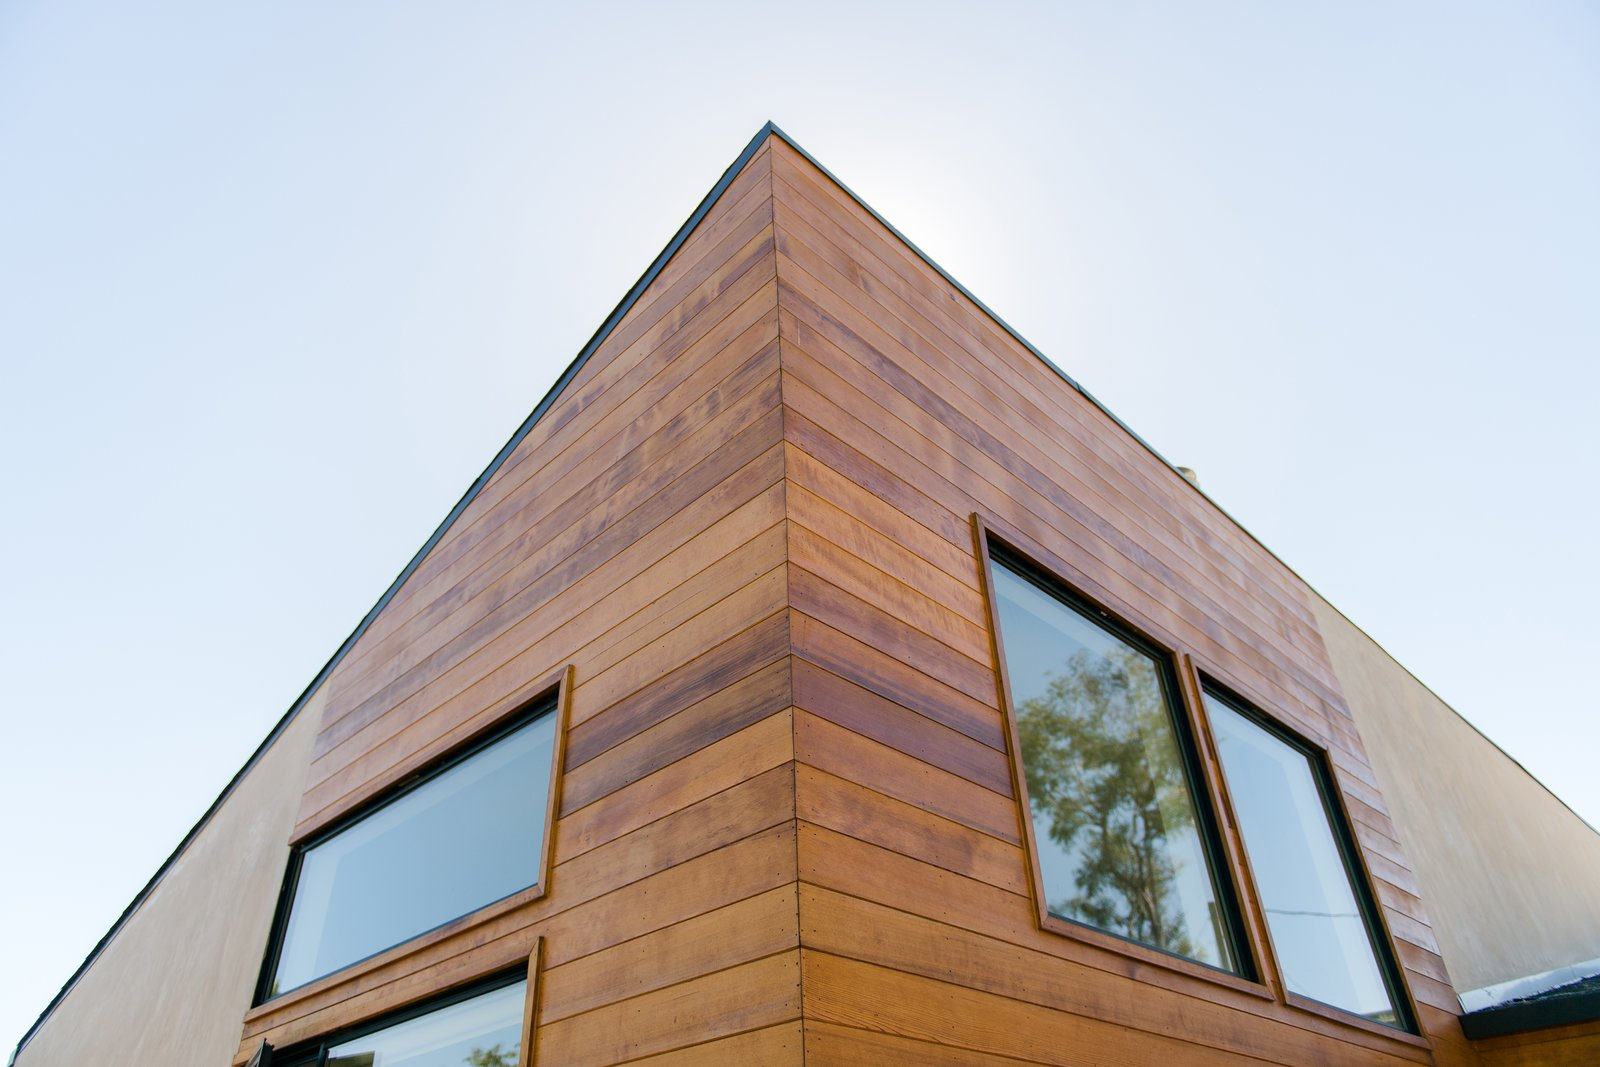 Exterior, House Building Type, Ranch Building Type, Wood Siding Material, and Stucco Siding Material Exterior cedar siding adds asymmetrical interest at the new angled roof at the front addition.  A California Ranch Home, Reimagined by MYD studio, inc.